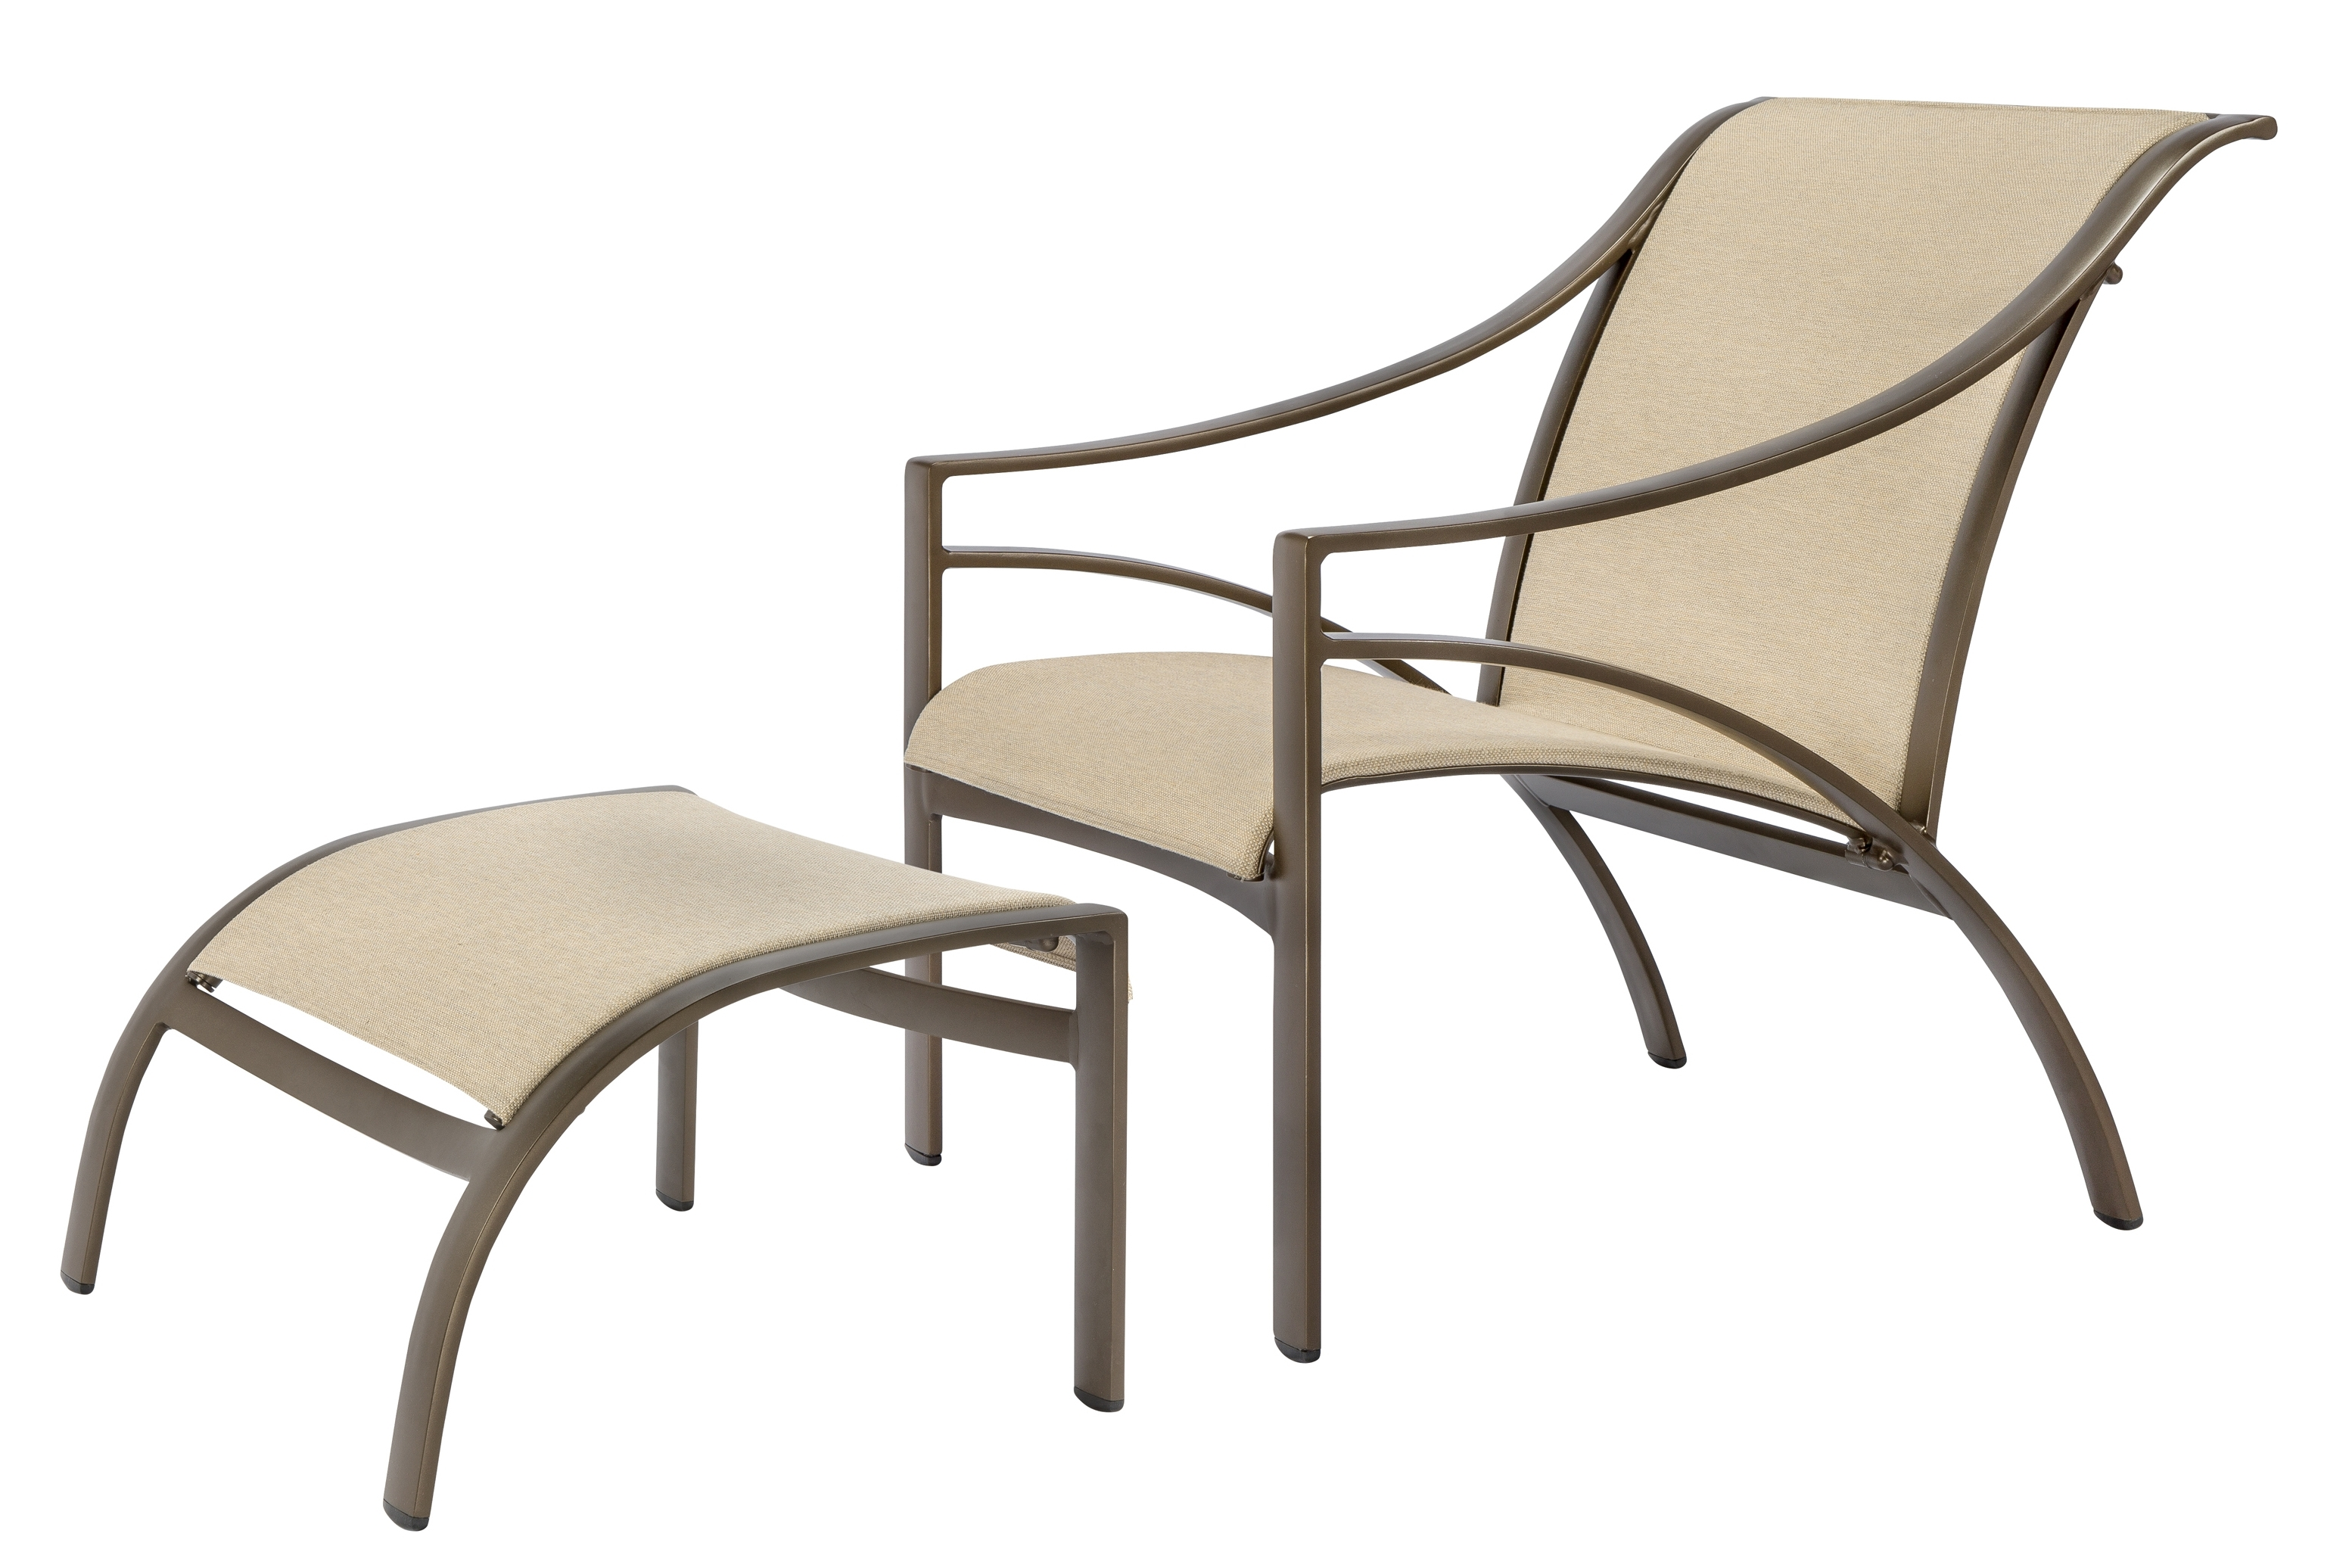 Hearth & Home Magazine Throughout Brown Jordan Chaise Lounge Chairs (View 6 of 15)